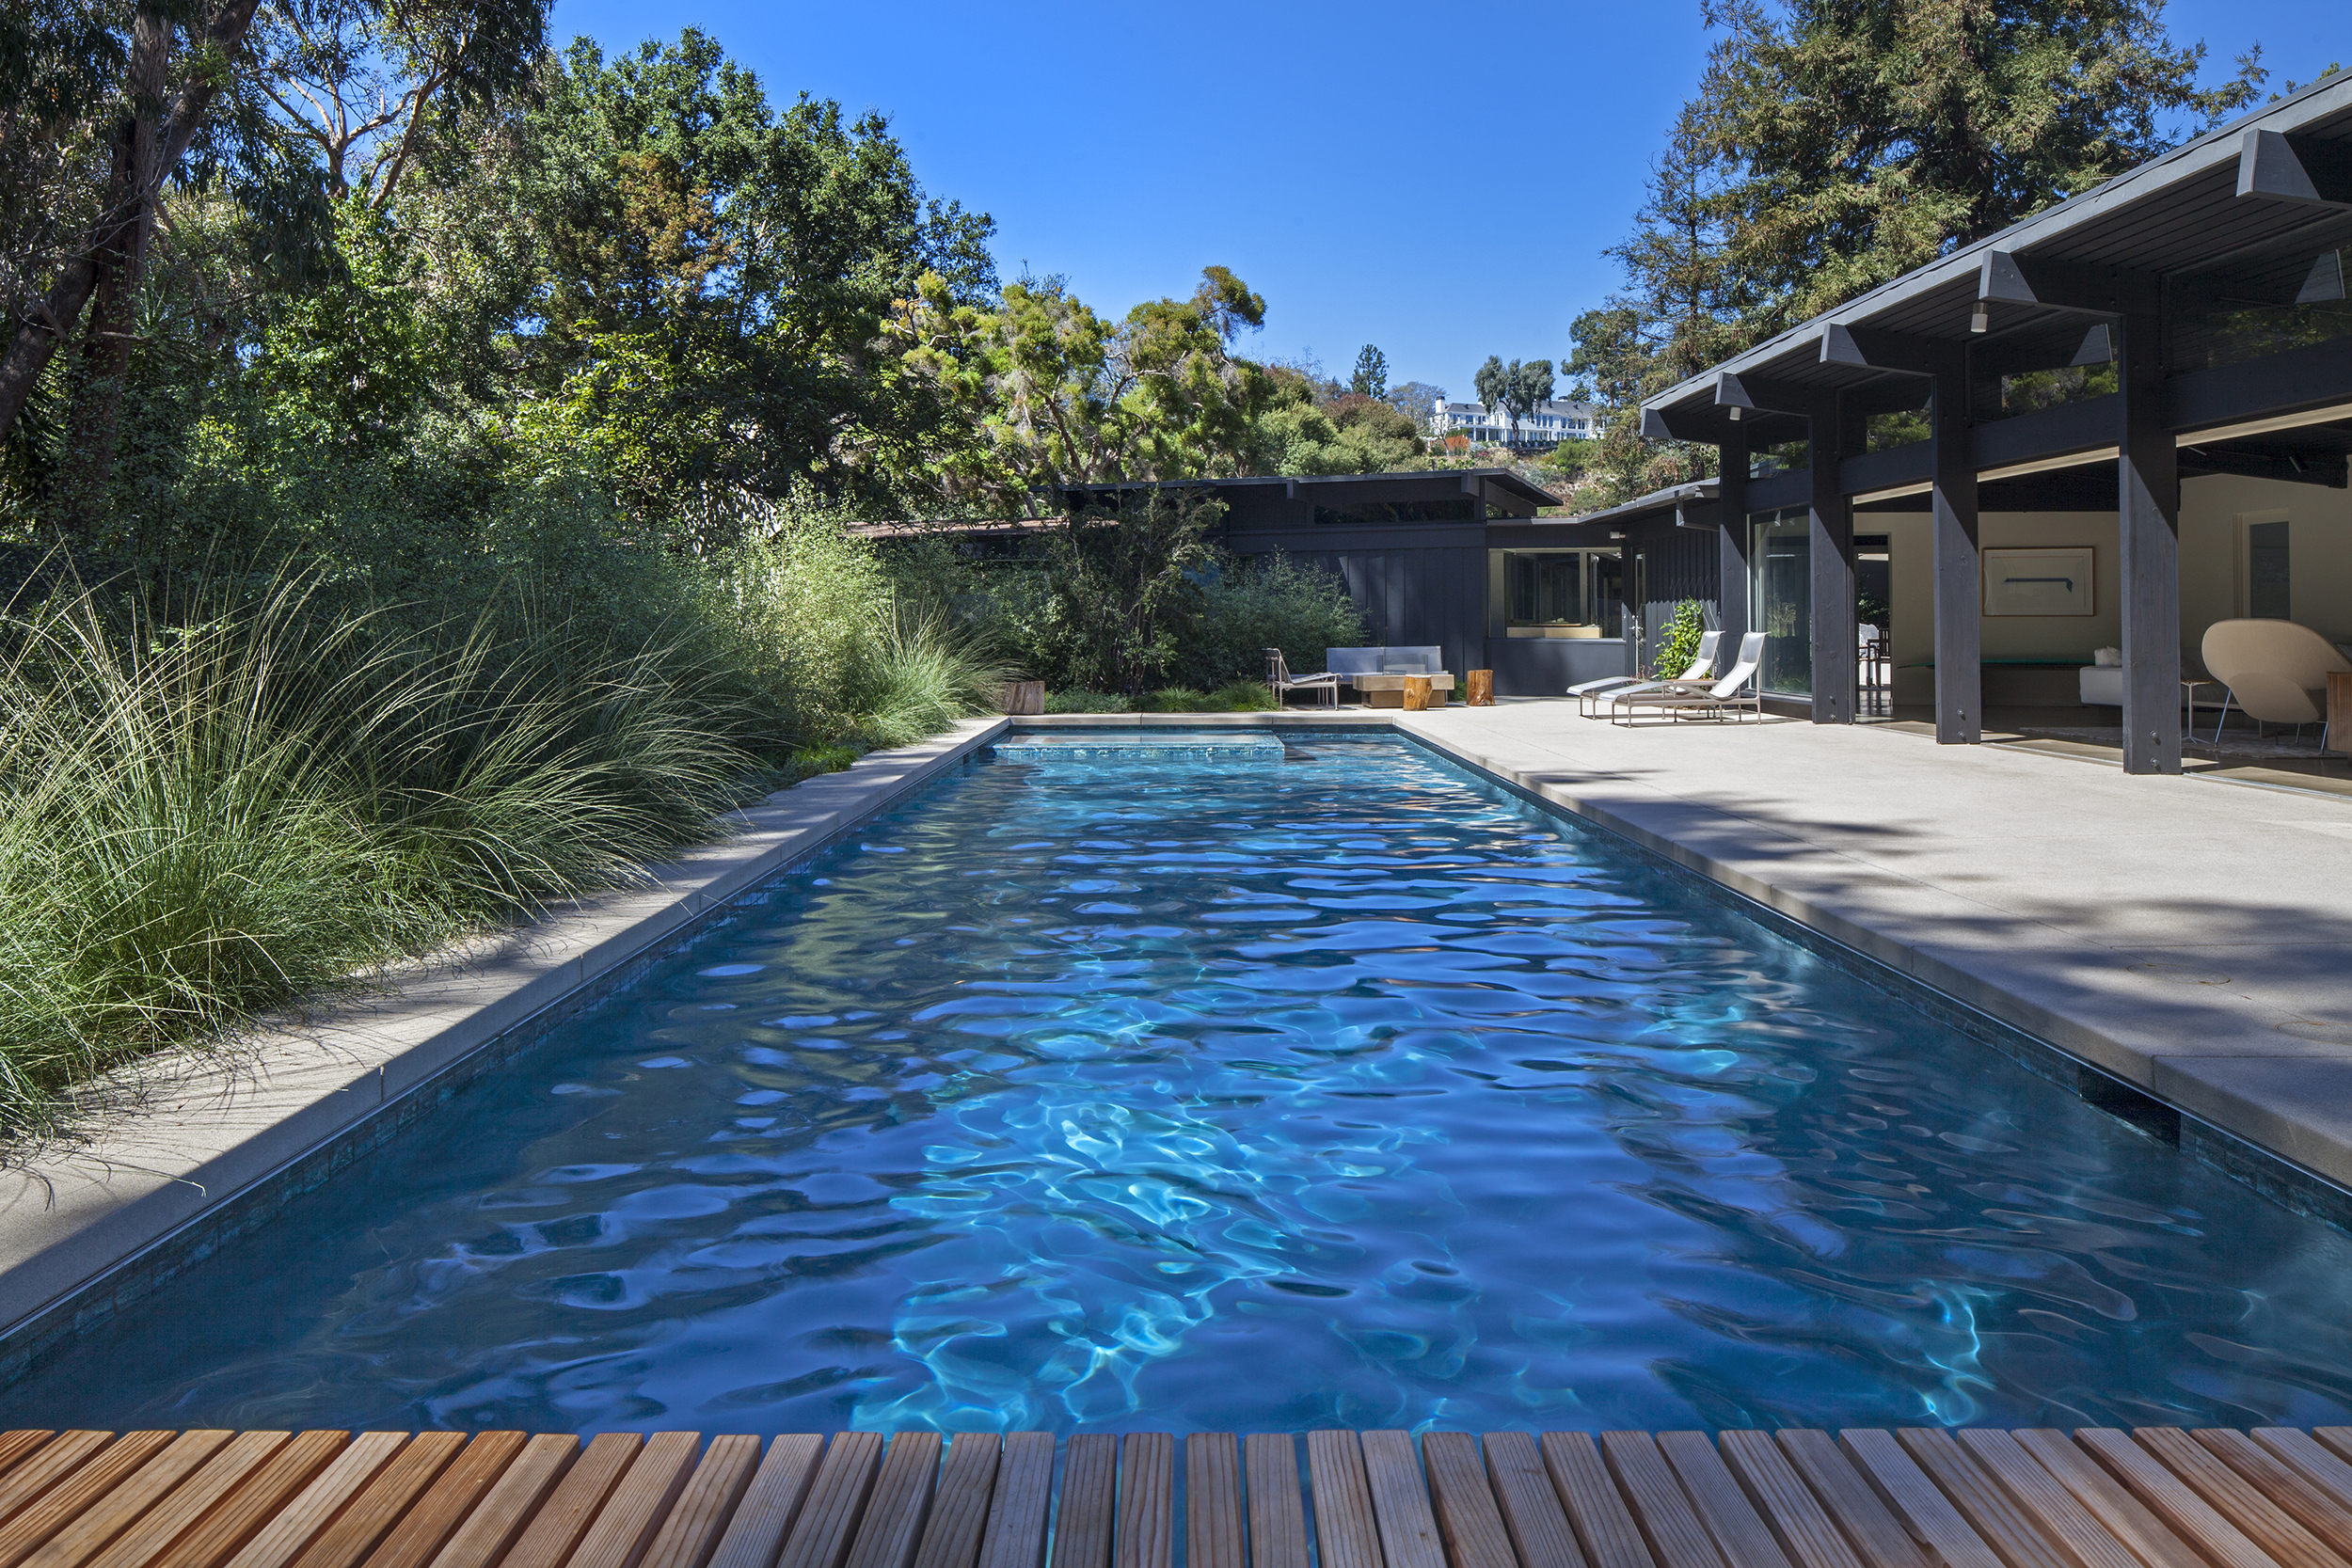 Pool design with ipe deck construction and natural grass landscape - Rustic Canyon - Los Angeles garden design by Campion Walker Landscapes.jpg